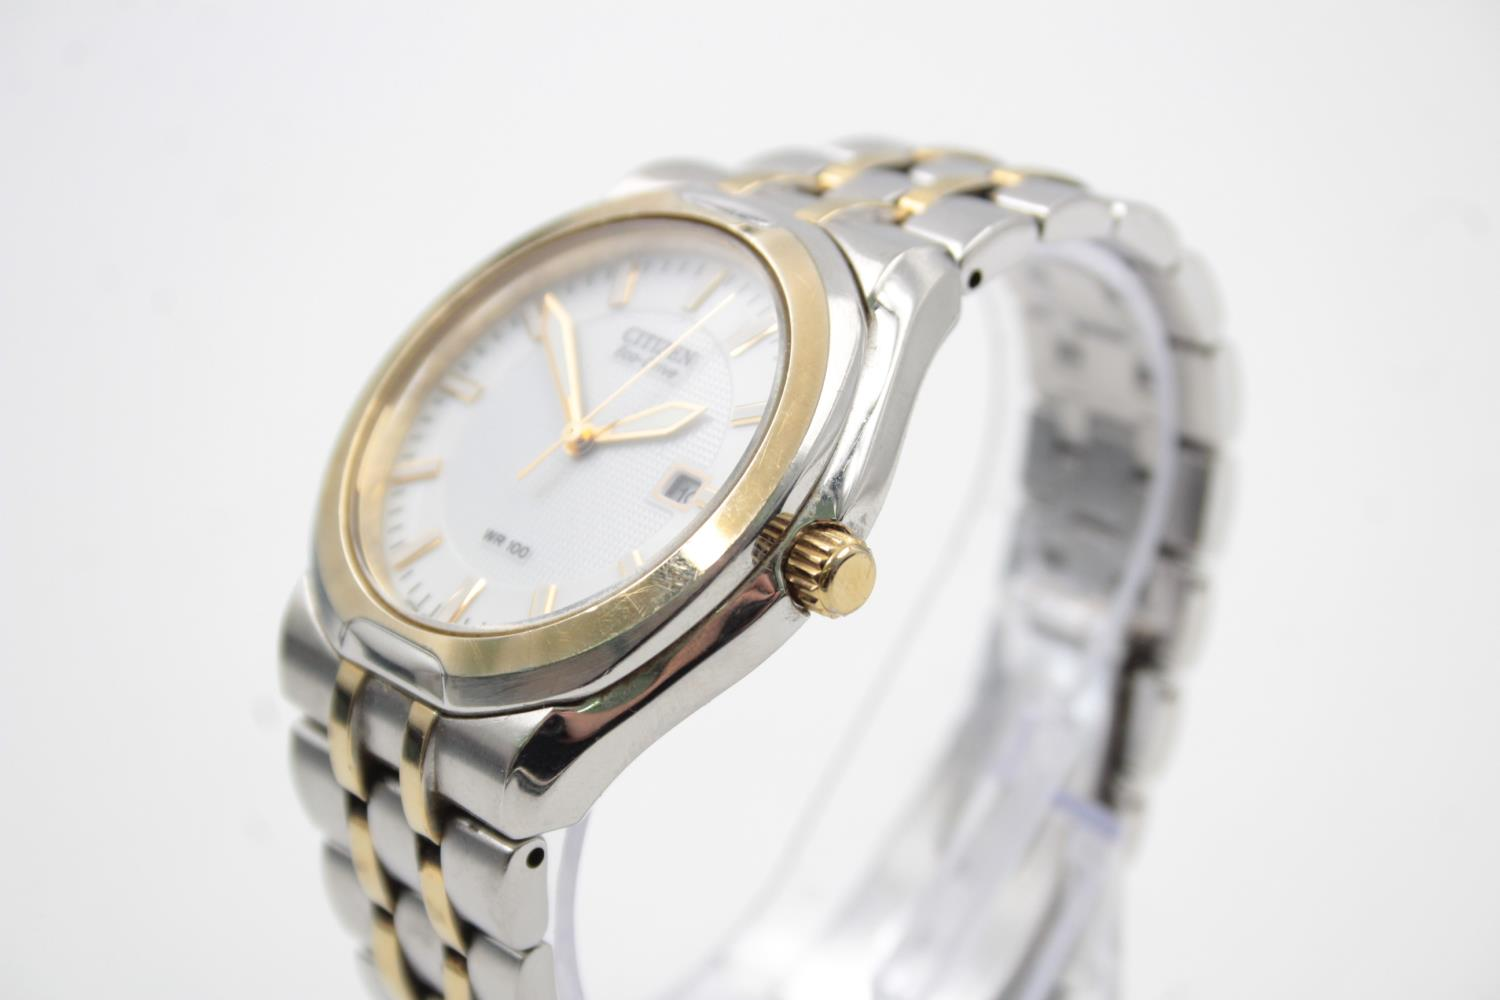 Gents CITIZEN Eco-Drive WR100 Two Tone WRISTWATCH WORKING in Original Box - Image 4 of 7